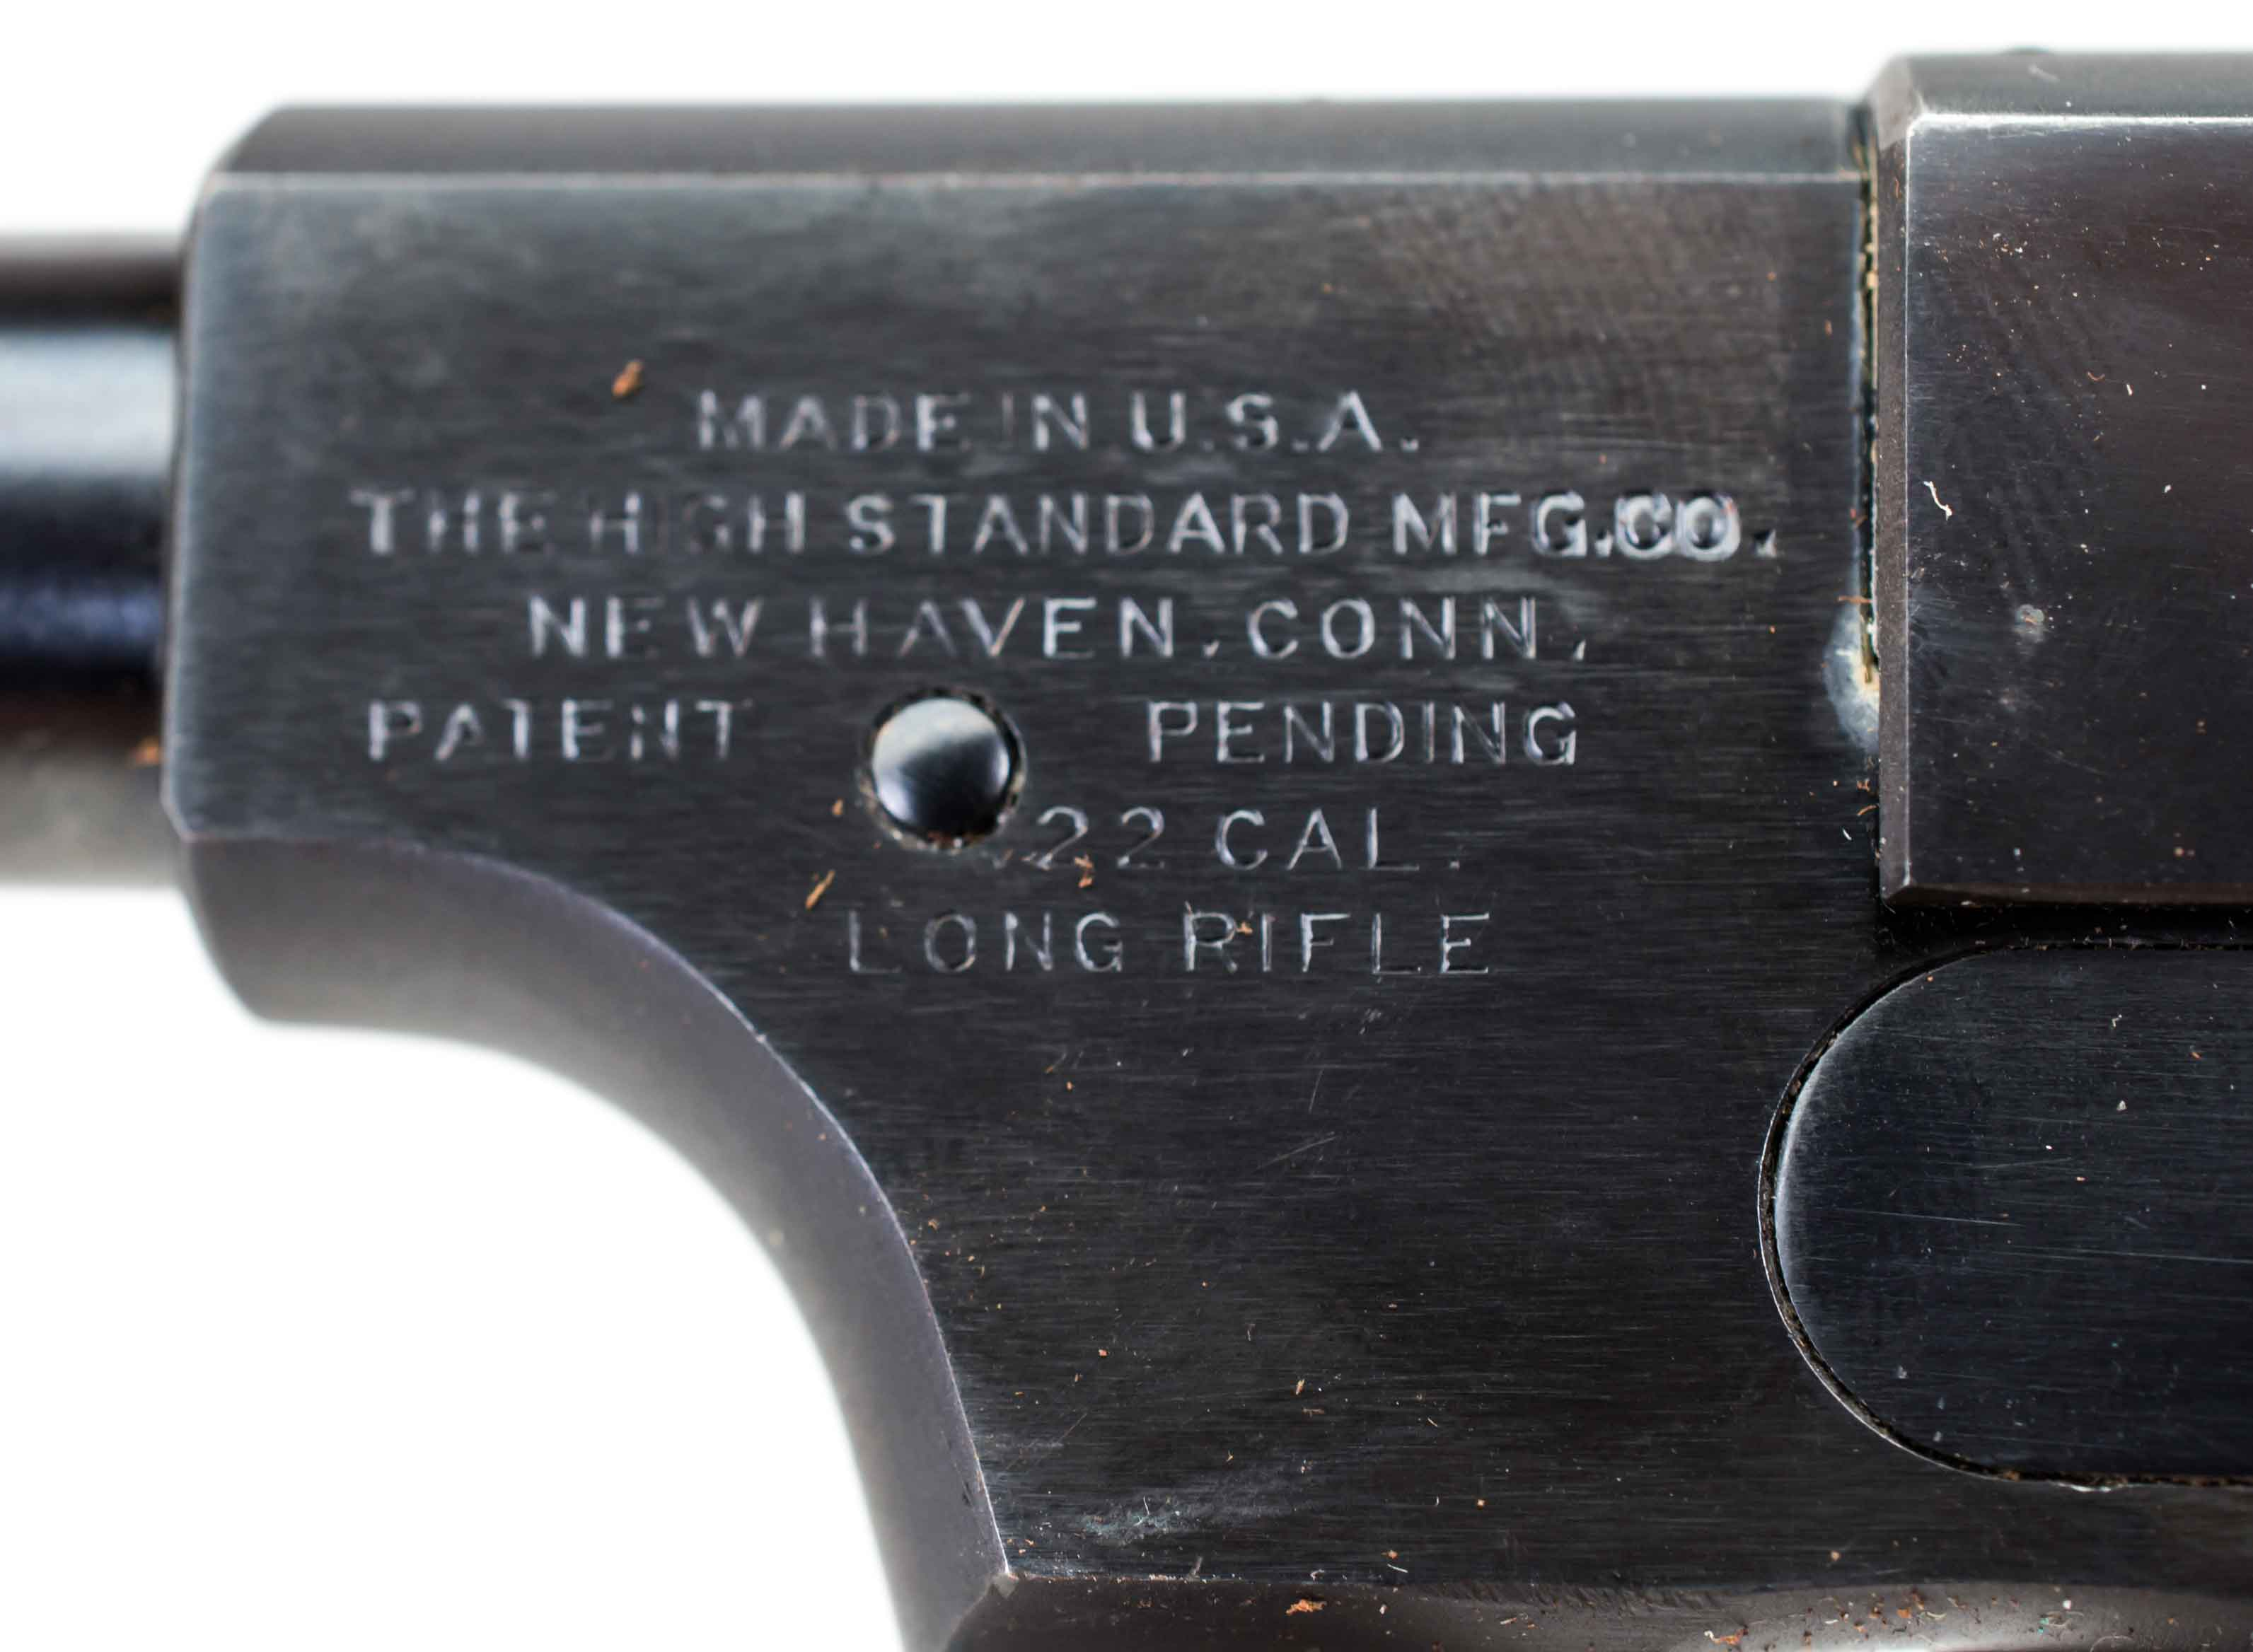 HIGH STANDARD HB 22LR (Auction ID: 5200853, End Time : Sep